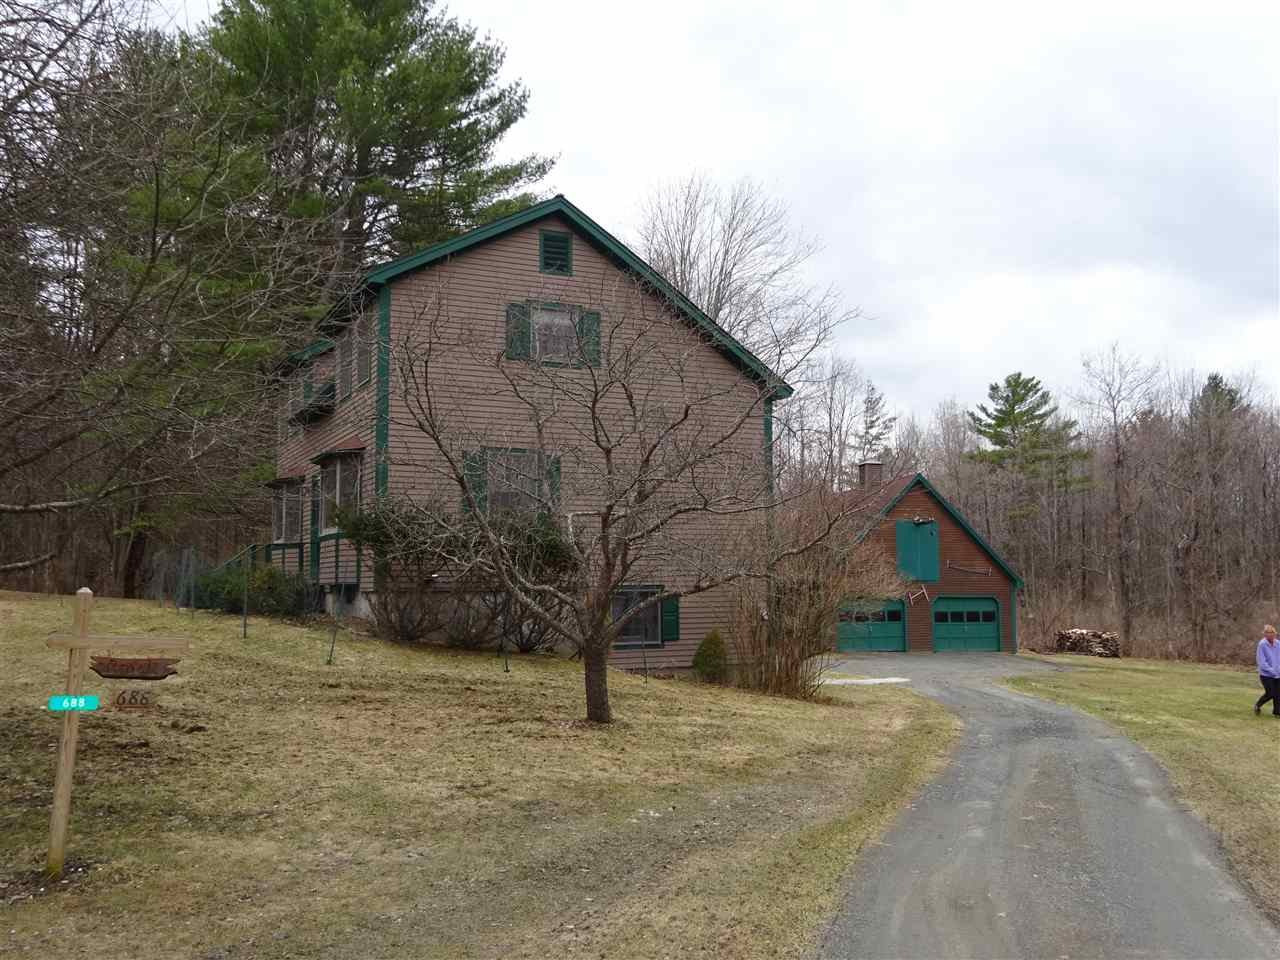 Well built home on 3.5 private acres abutting the West Windsor Town Forest and Mt. Ascutney.   Excellent light.  Open kitchen dining area.  Bedrooms are large with ample storage.  The walk out basement has 440 sq. ft finished.  Used as an office now but could be a guest room, rec room etc.  There is a 1 bay garage under currently used for a woodworking shop. Many other uses are possible.  An attractive 30x26 detached garage has room for 3 vehicles plus equipment & toys.  Storage up.  Views over rolling meadows.  Wildlife pond.  Tree fort.  All located 'on the trails' at the end of Mile Long Field.  Endless hiking ,biking and outdoor recreation await.  Protective covenants